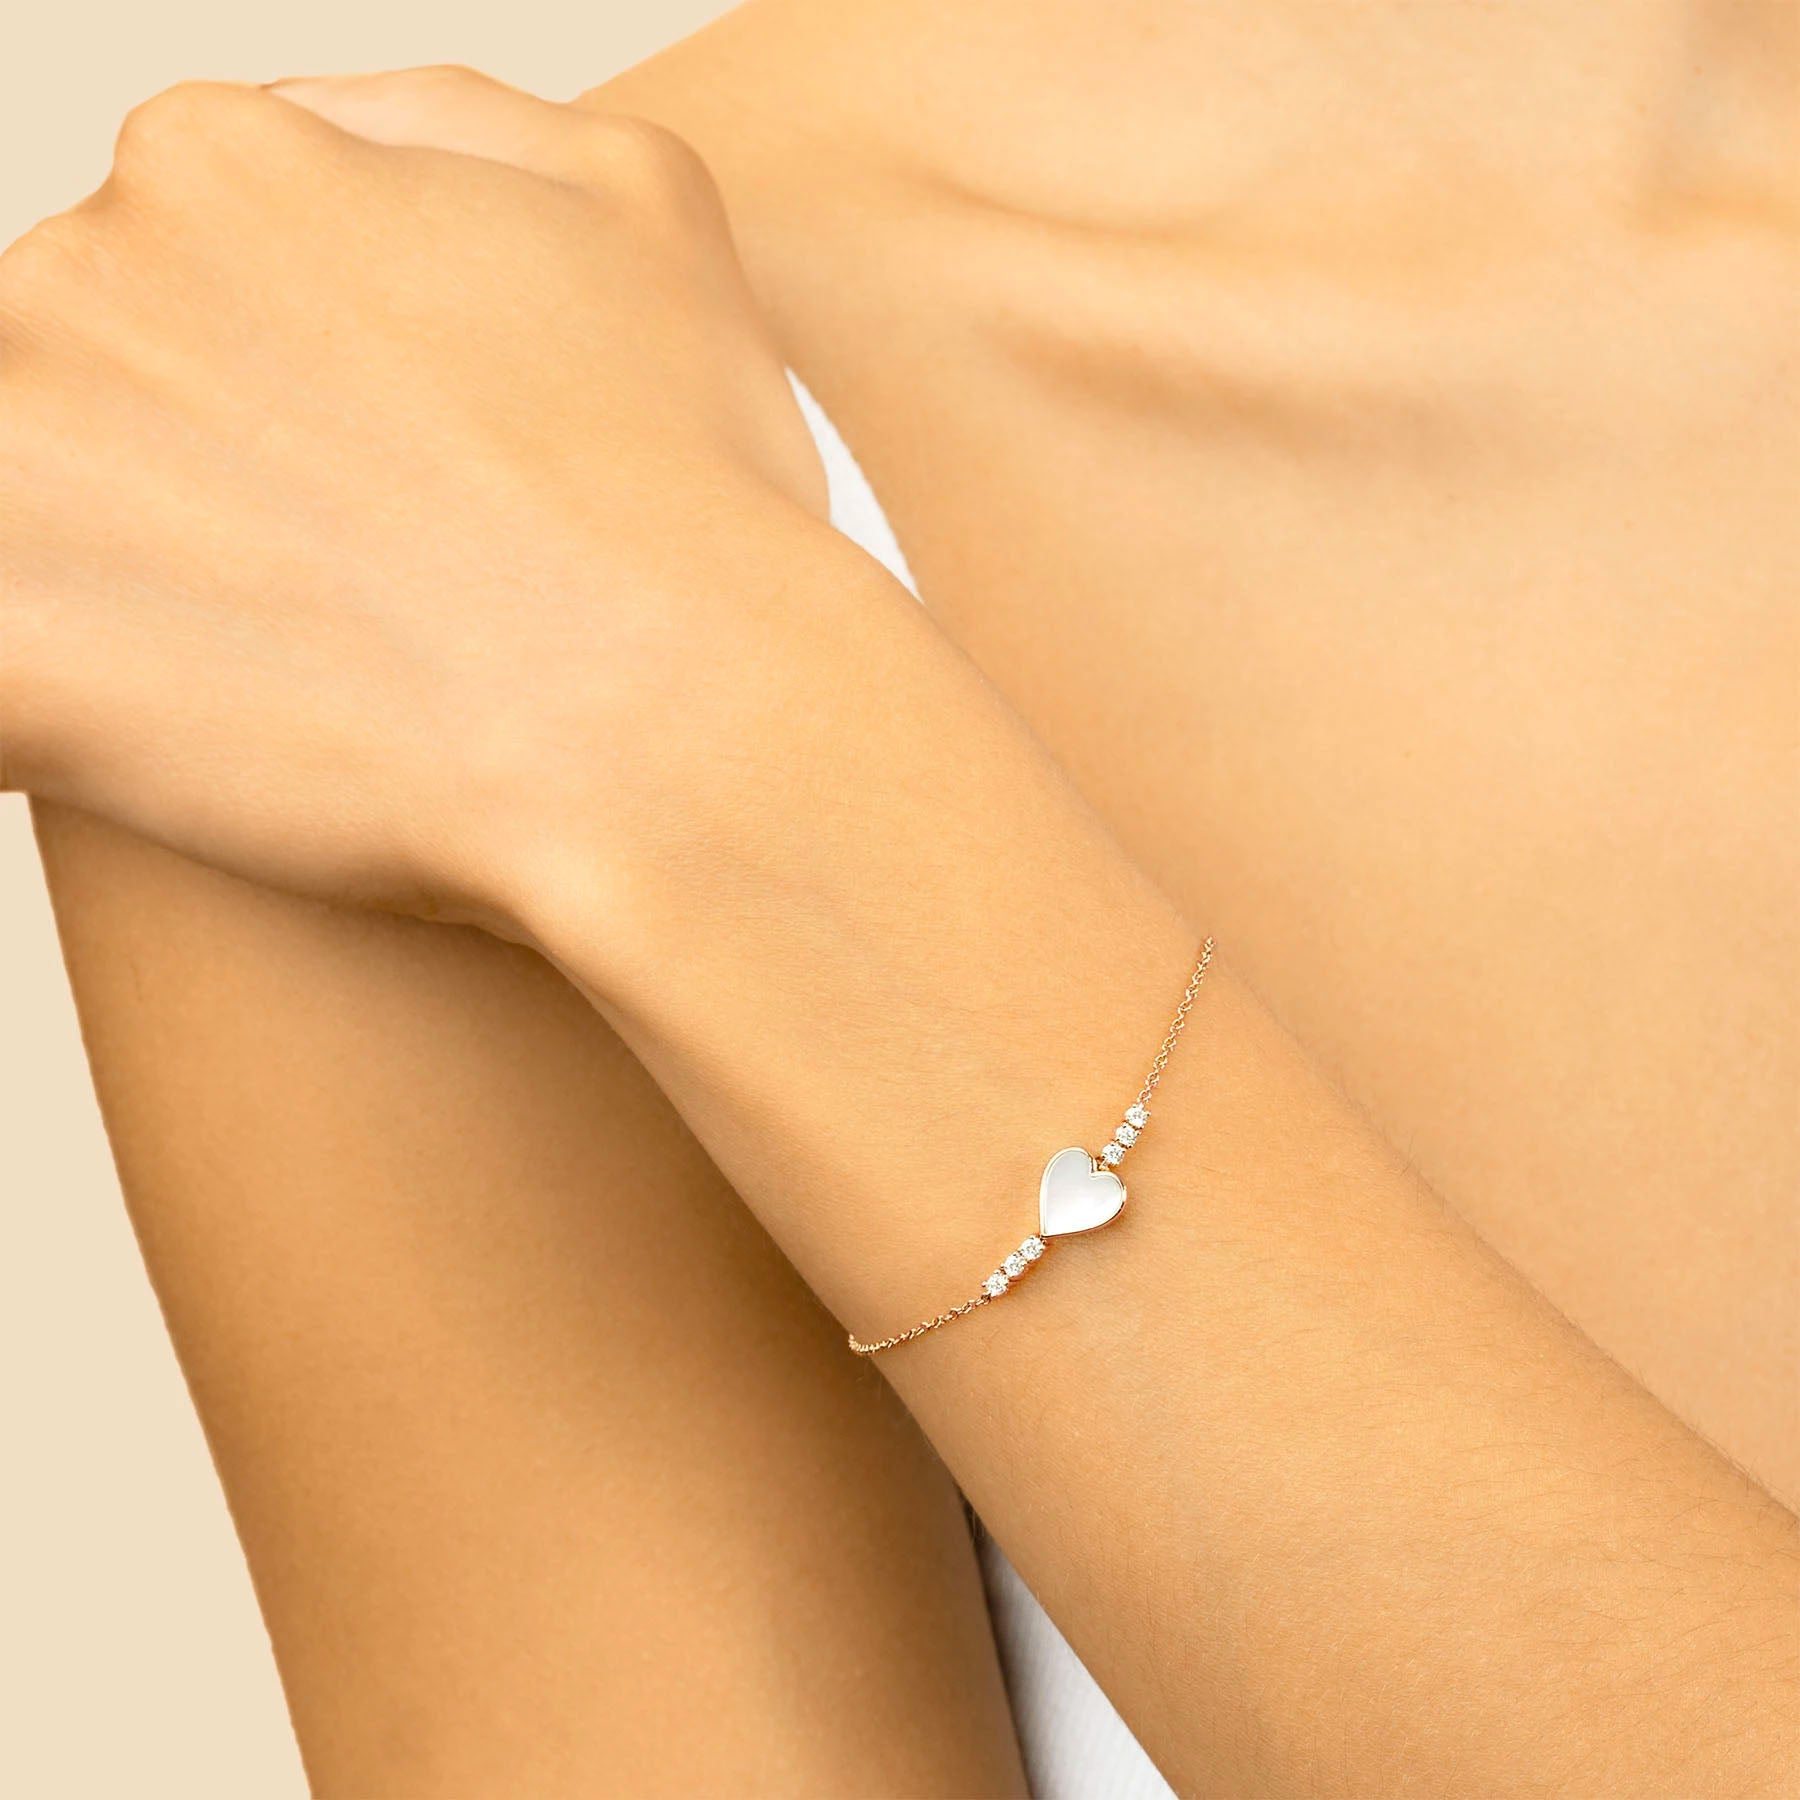 DIAMOND AND MOTHER OF PEARL HEART BRACELET